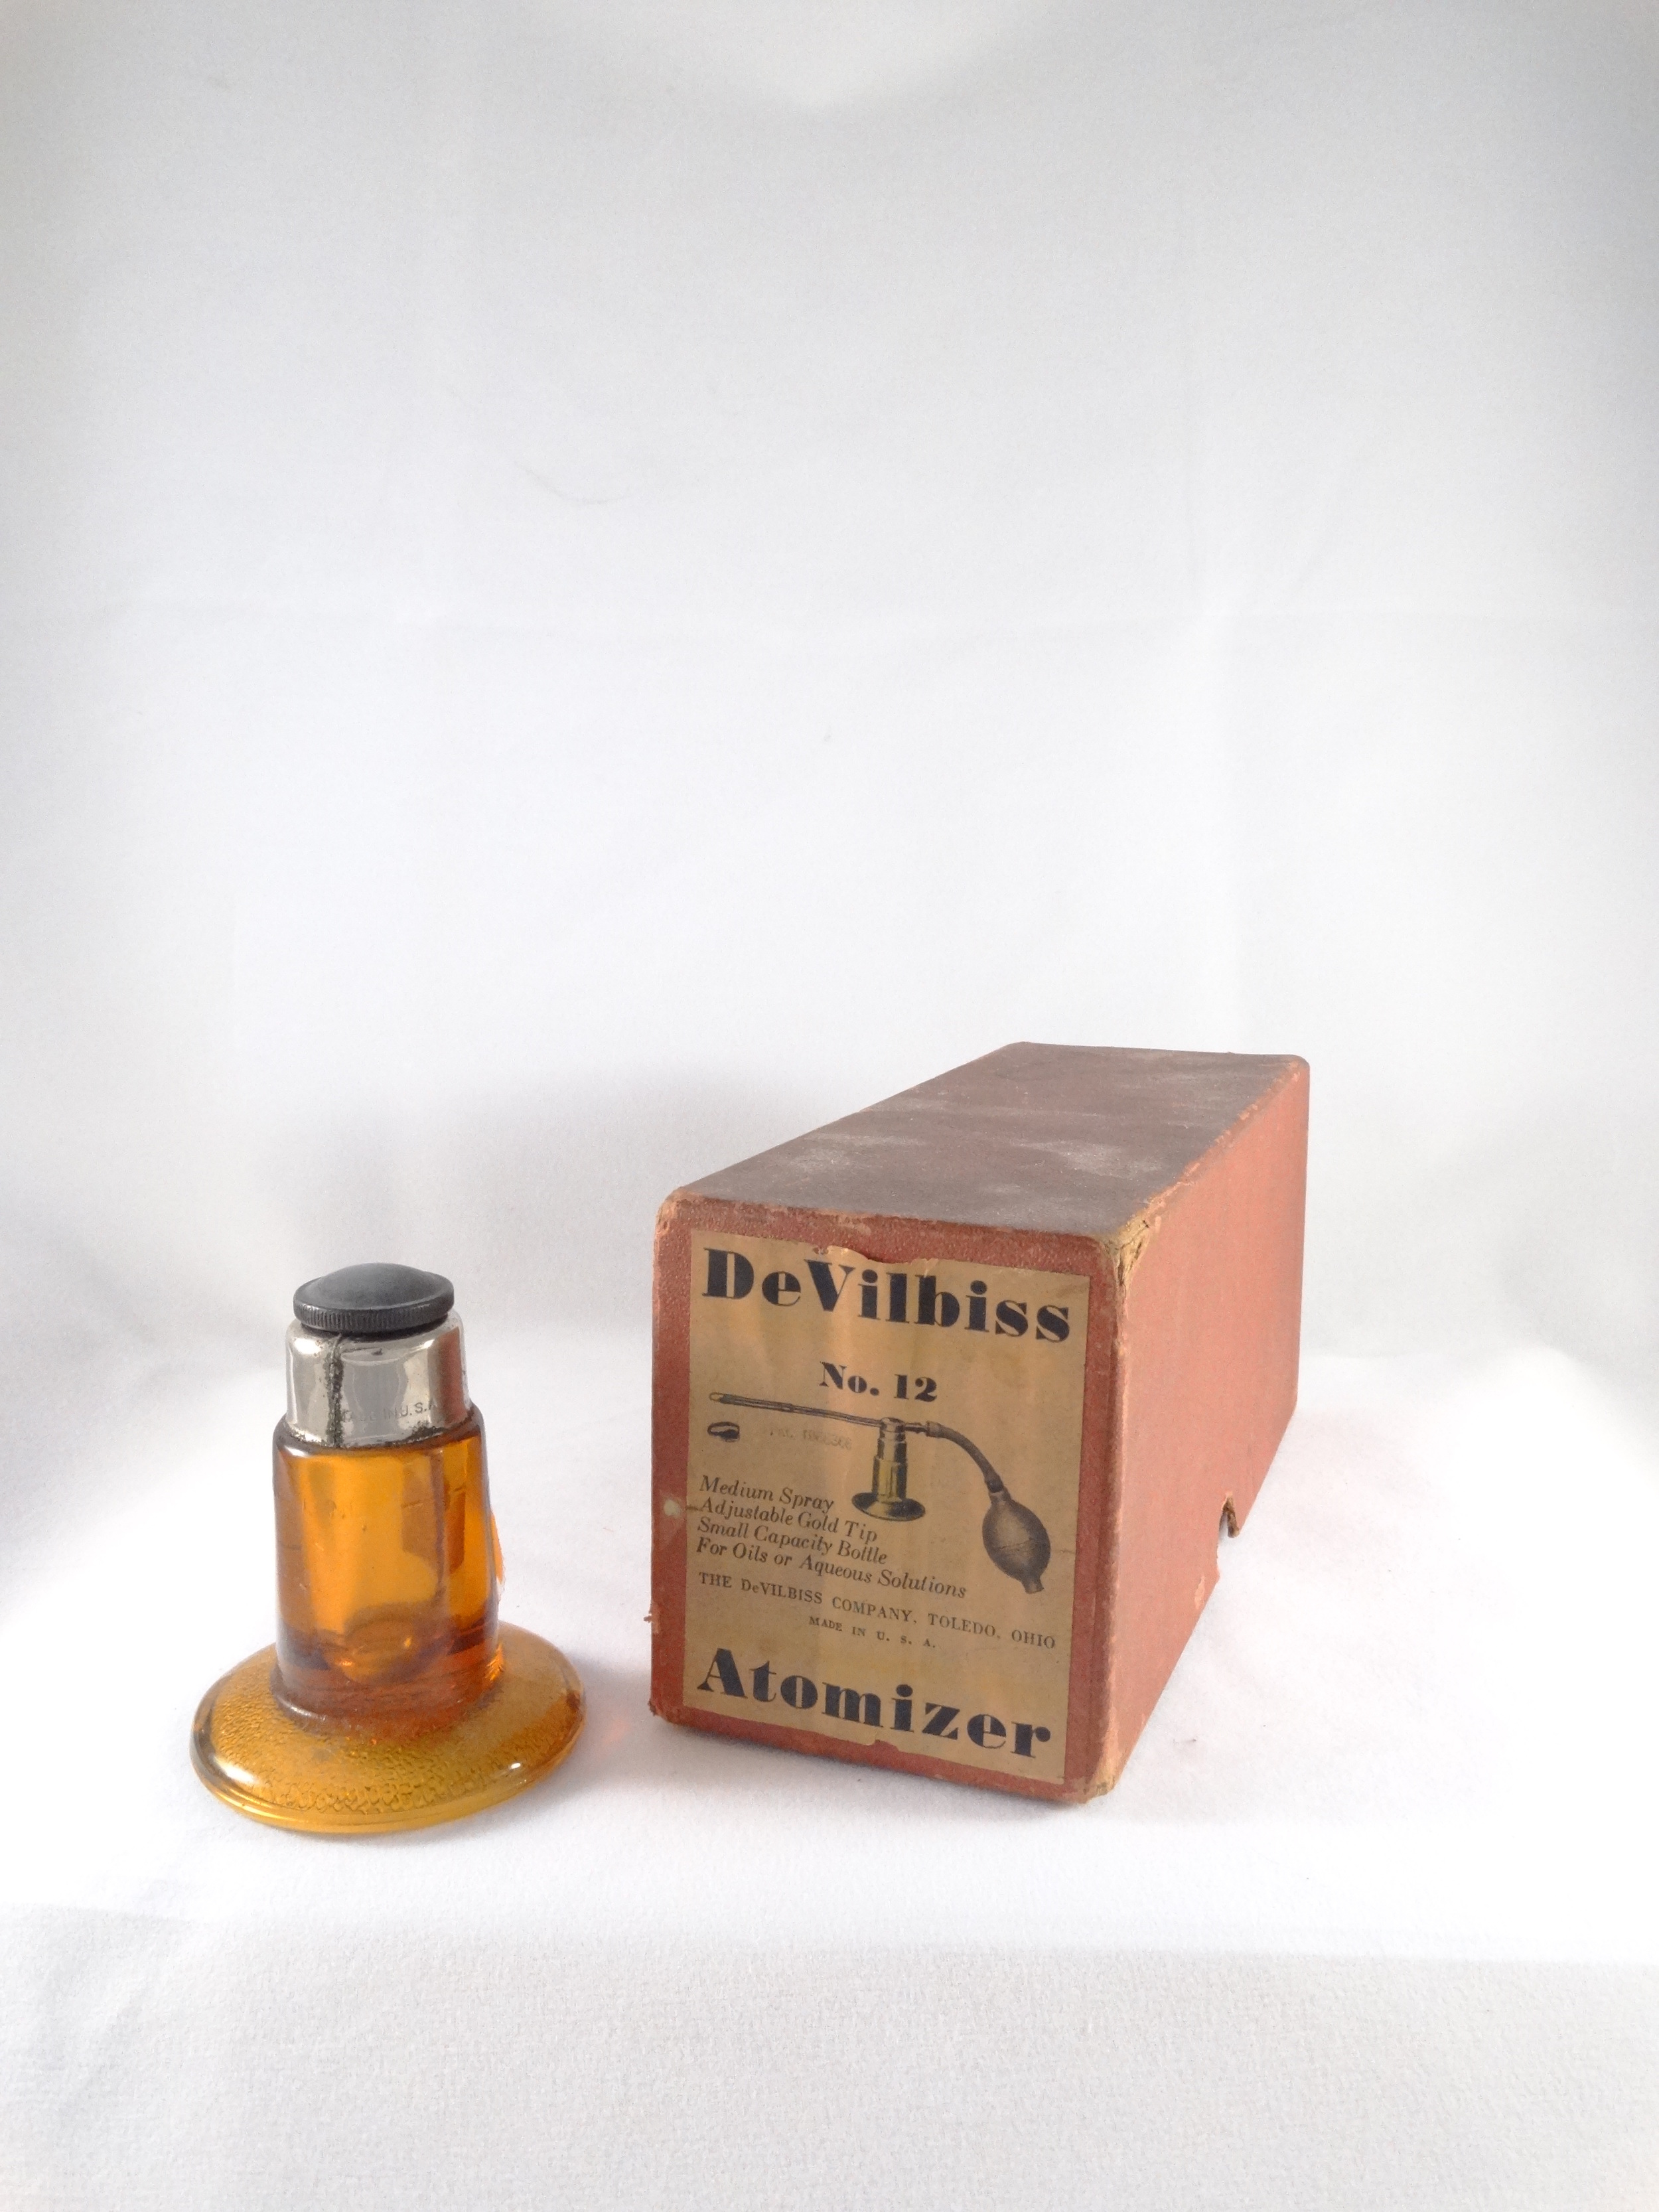 divilbiss atomizer no.12 with original box